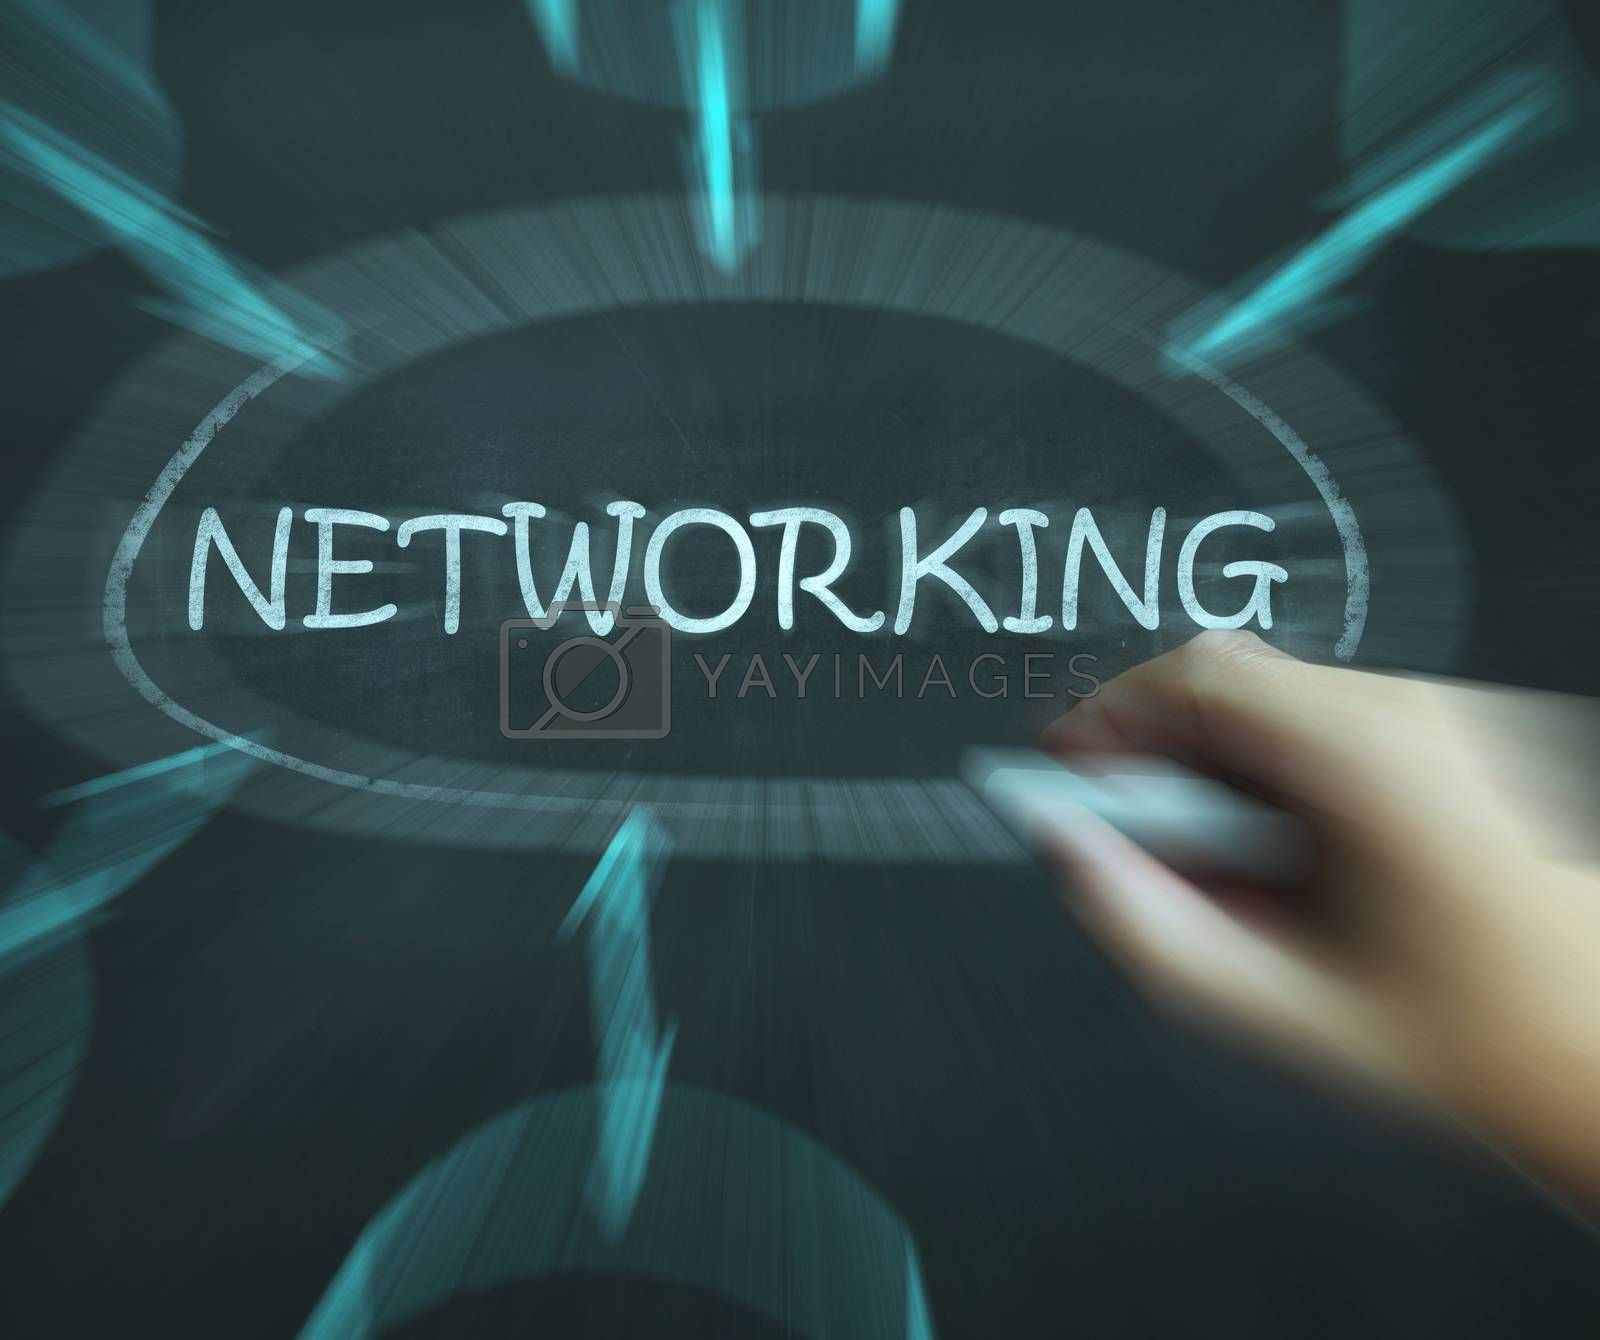 Networking Diagram Means Making Contacts And Connections by stuartmiles